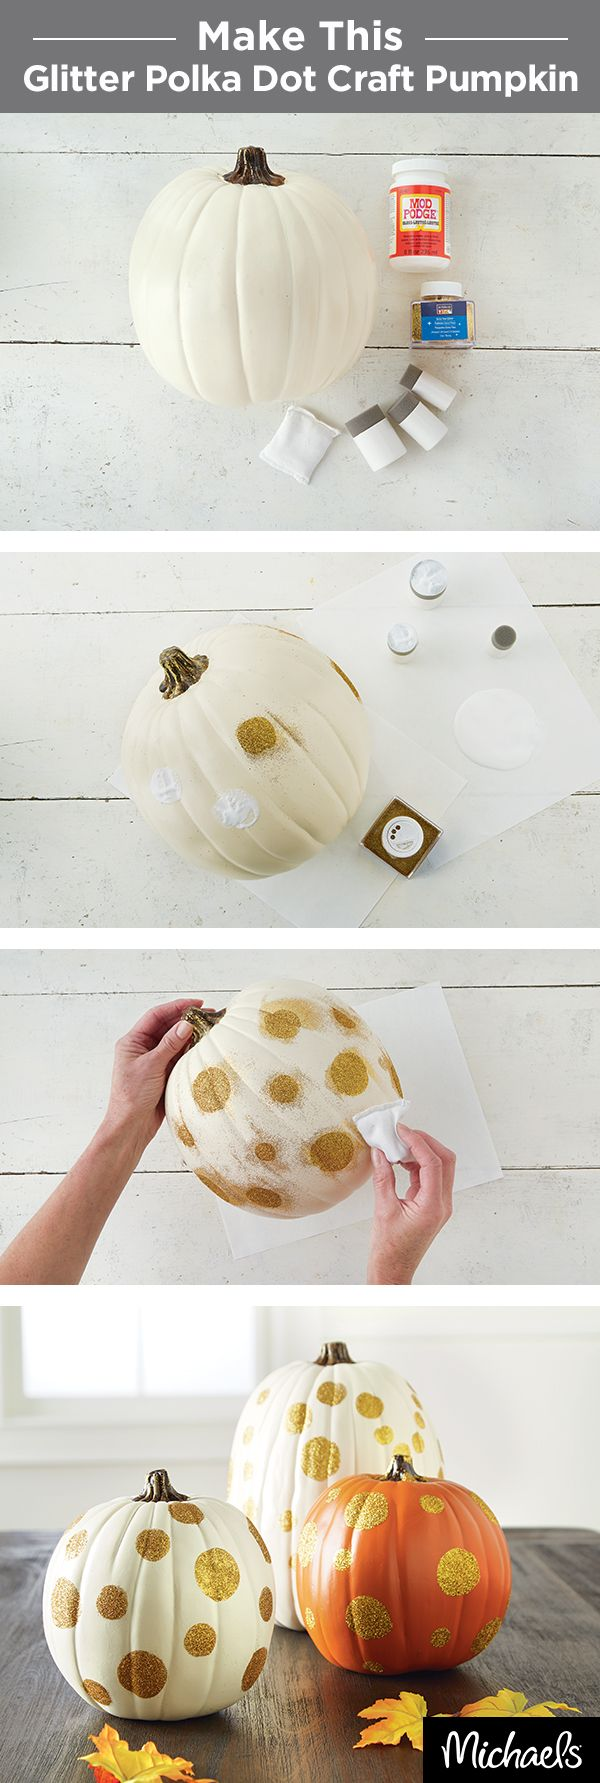 Make a glitter polka dot craft pumpkin to decorate your home this Fall. All you need are craft pumpkins, Mod Podge and glitter. Use a sponge to create jumbo dots with Mod Podge on your pumpkin and then sprinkle glitter. Wipe away the excess and let your pumpkin dry. Find everything you need for this craft at your local Michaels.